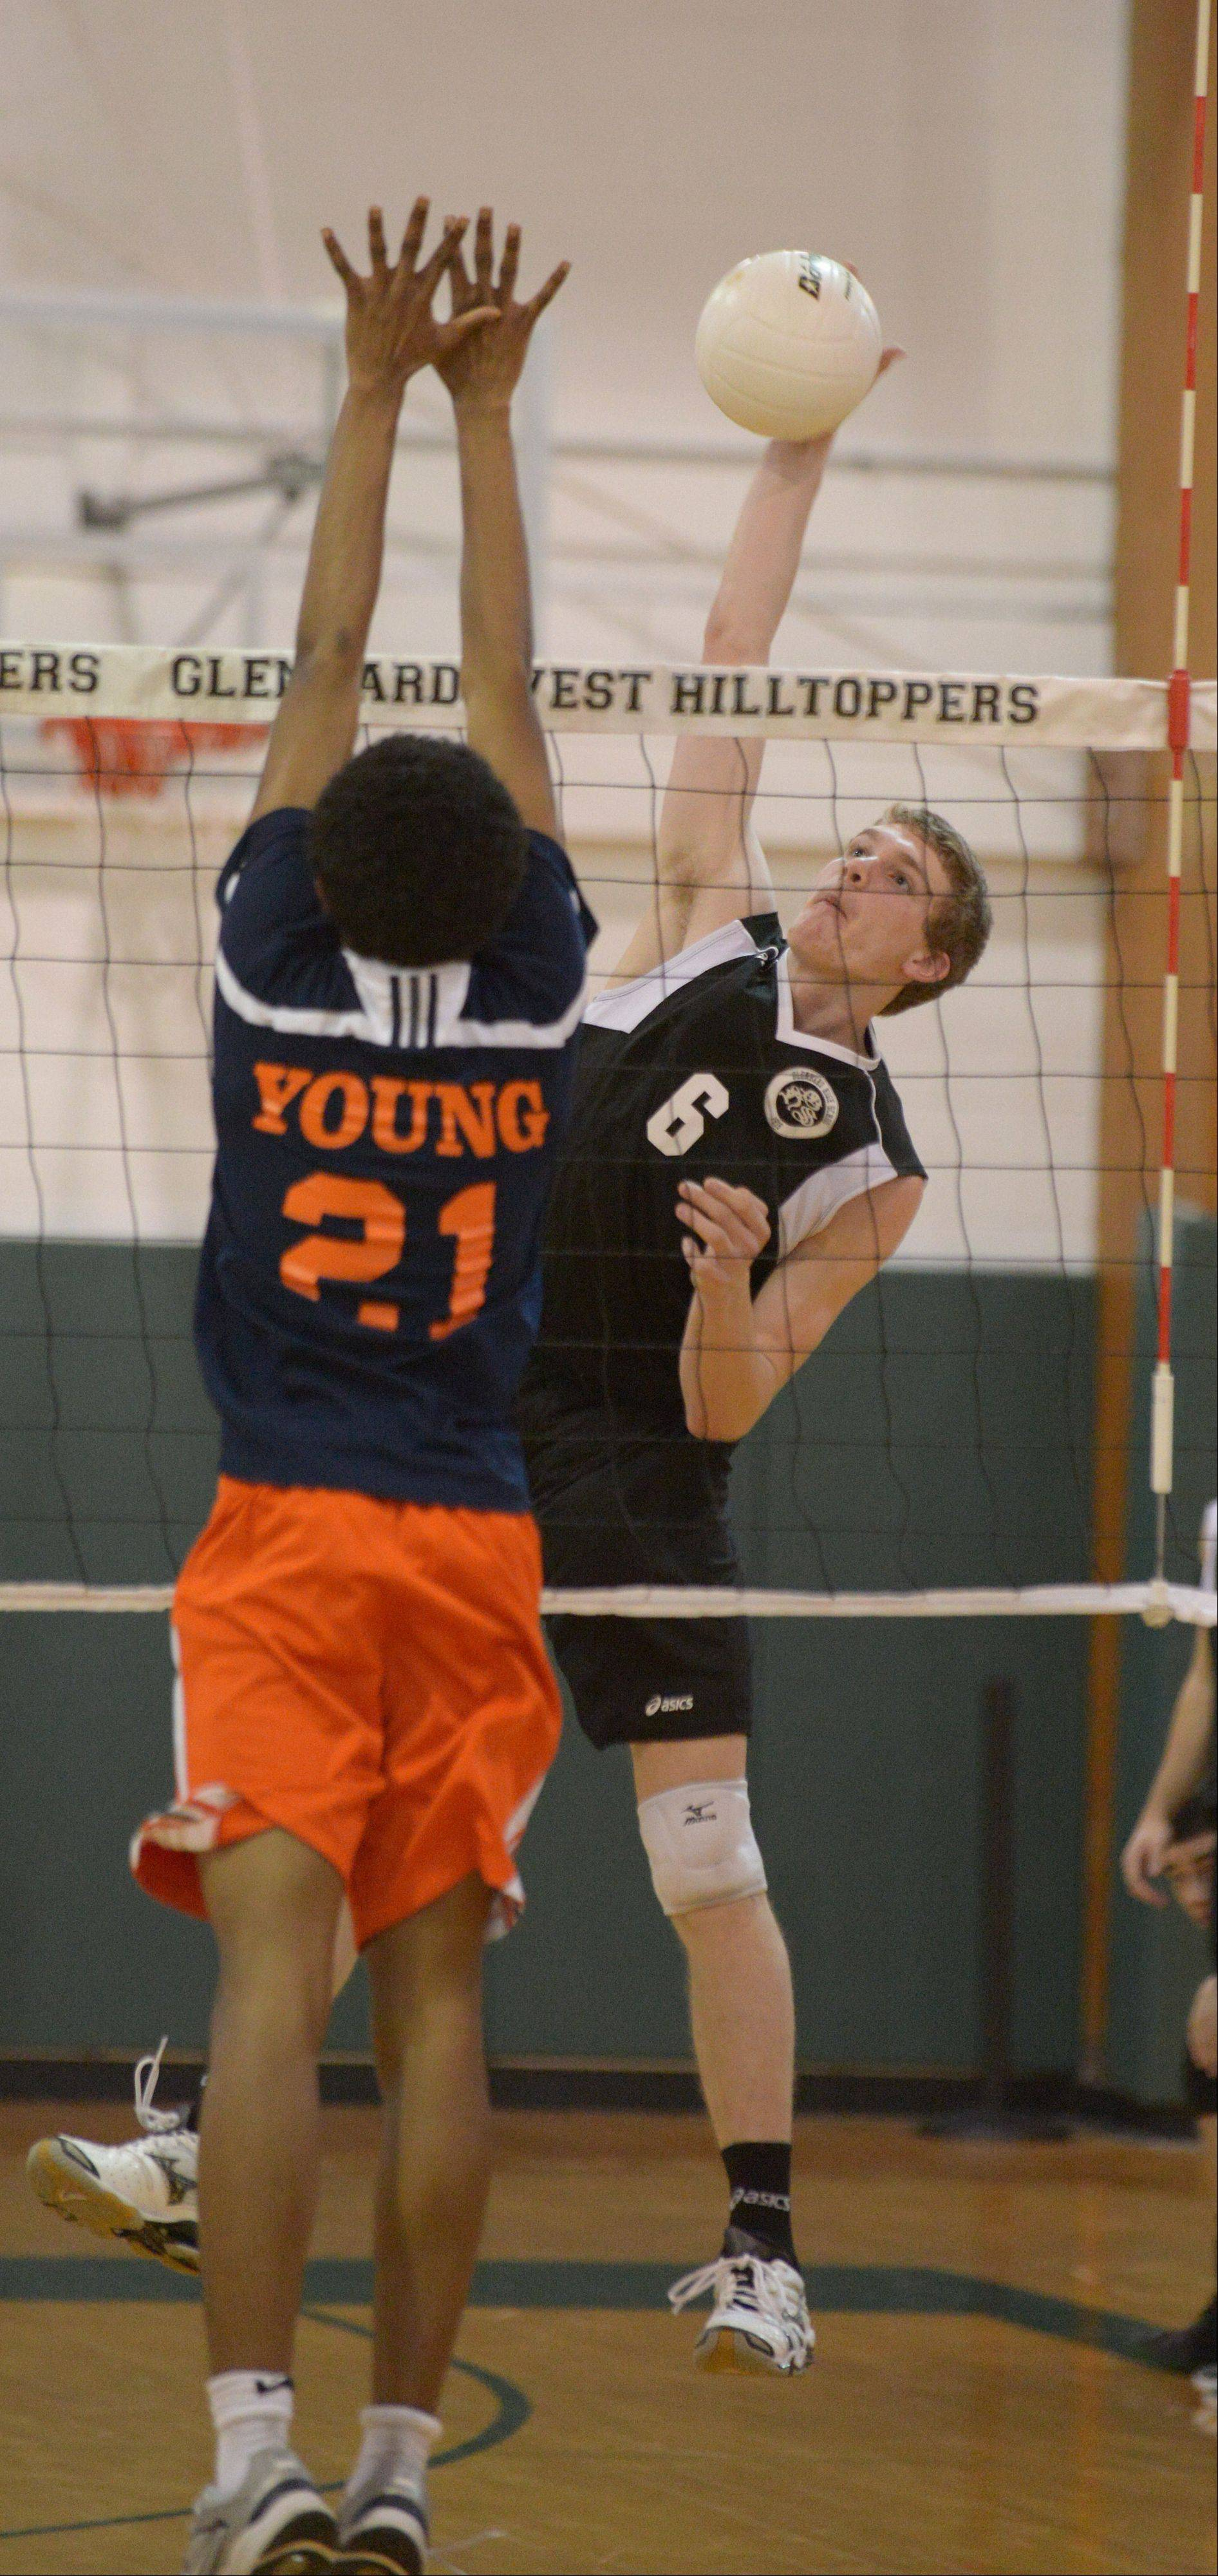 Max Montgomery of Glenbard West hits one at Malik Patton of Whitney Young. This took place during the Whitney Young at Glenbard West boys volleyball game Thursday.